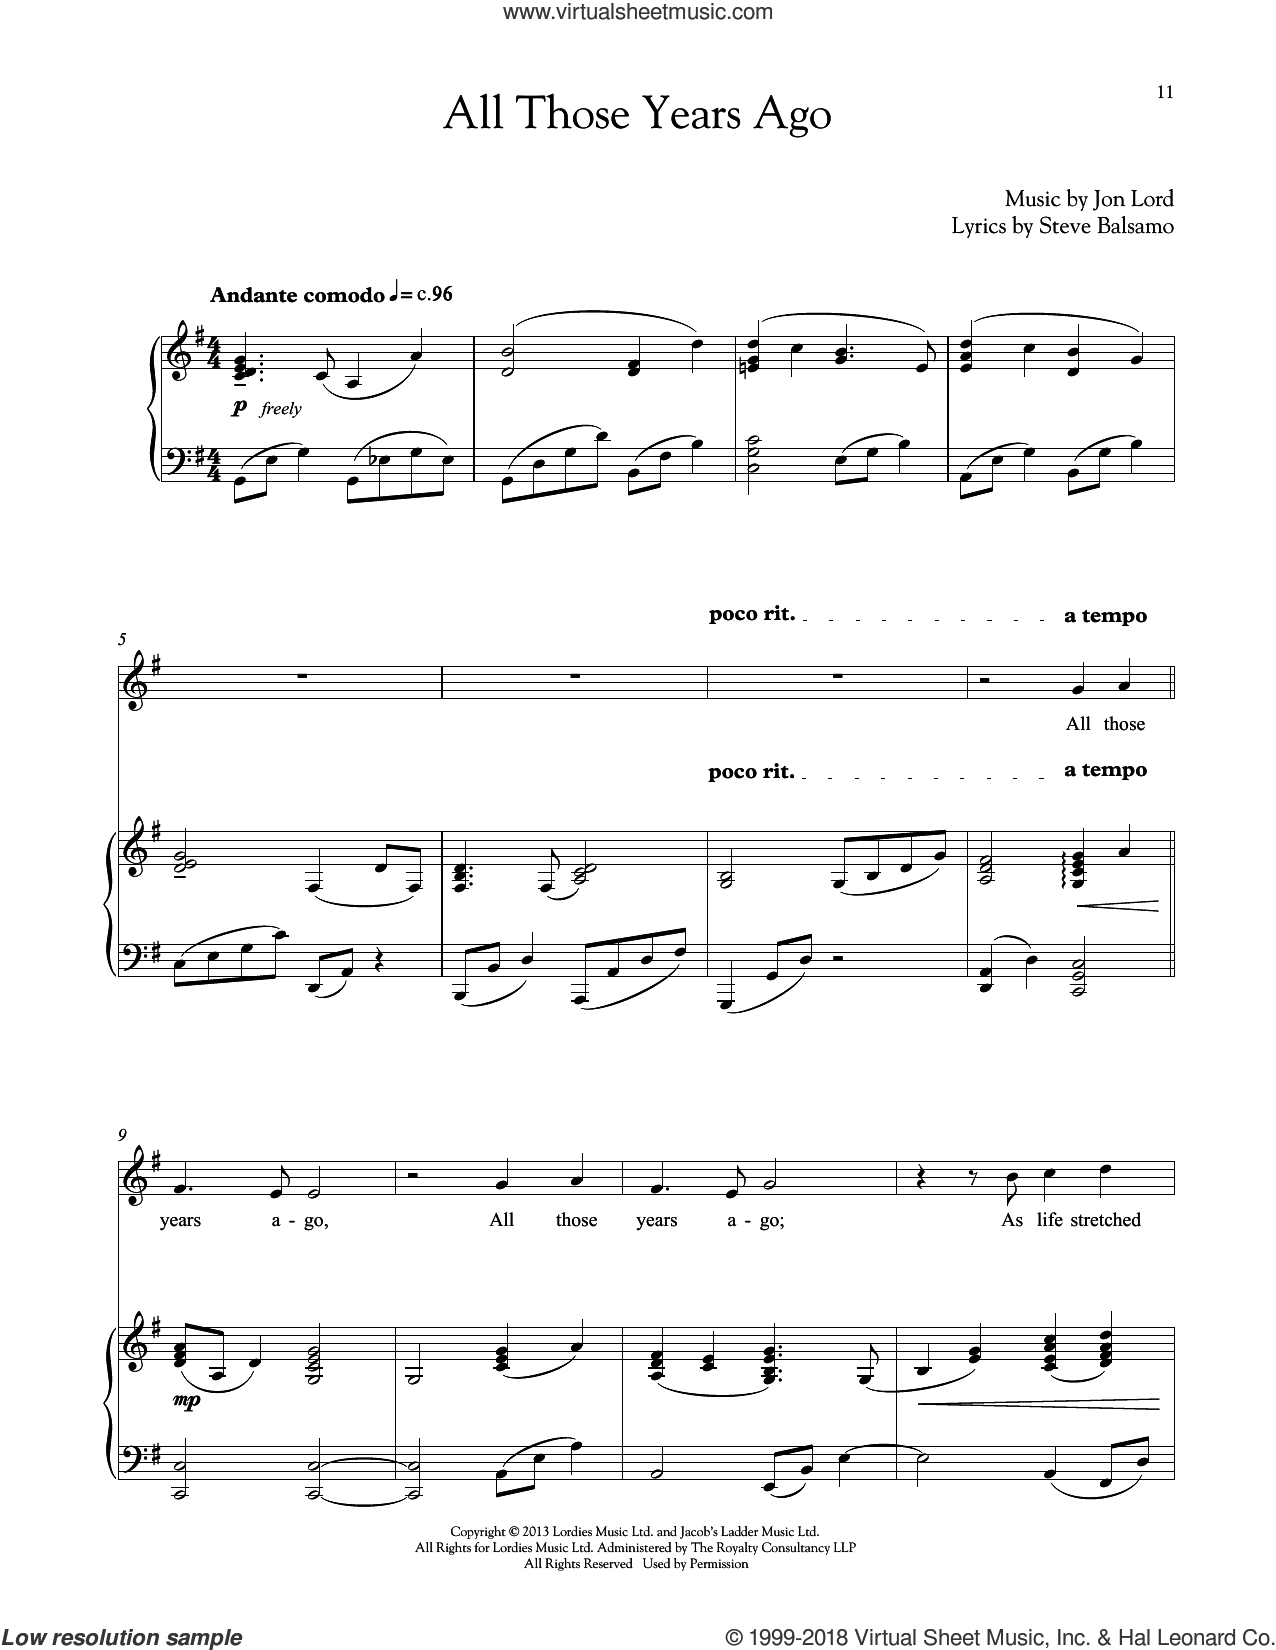 All Those Years Ago sheet music for voice and piano by Jon Lord and Steve Balsamo, intermediate skill level